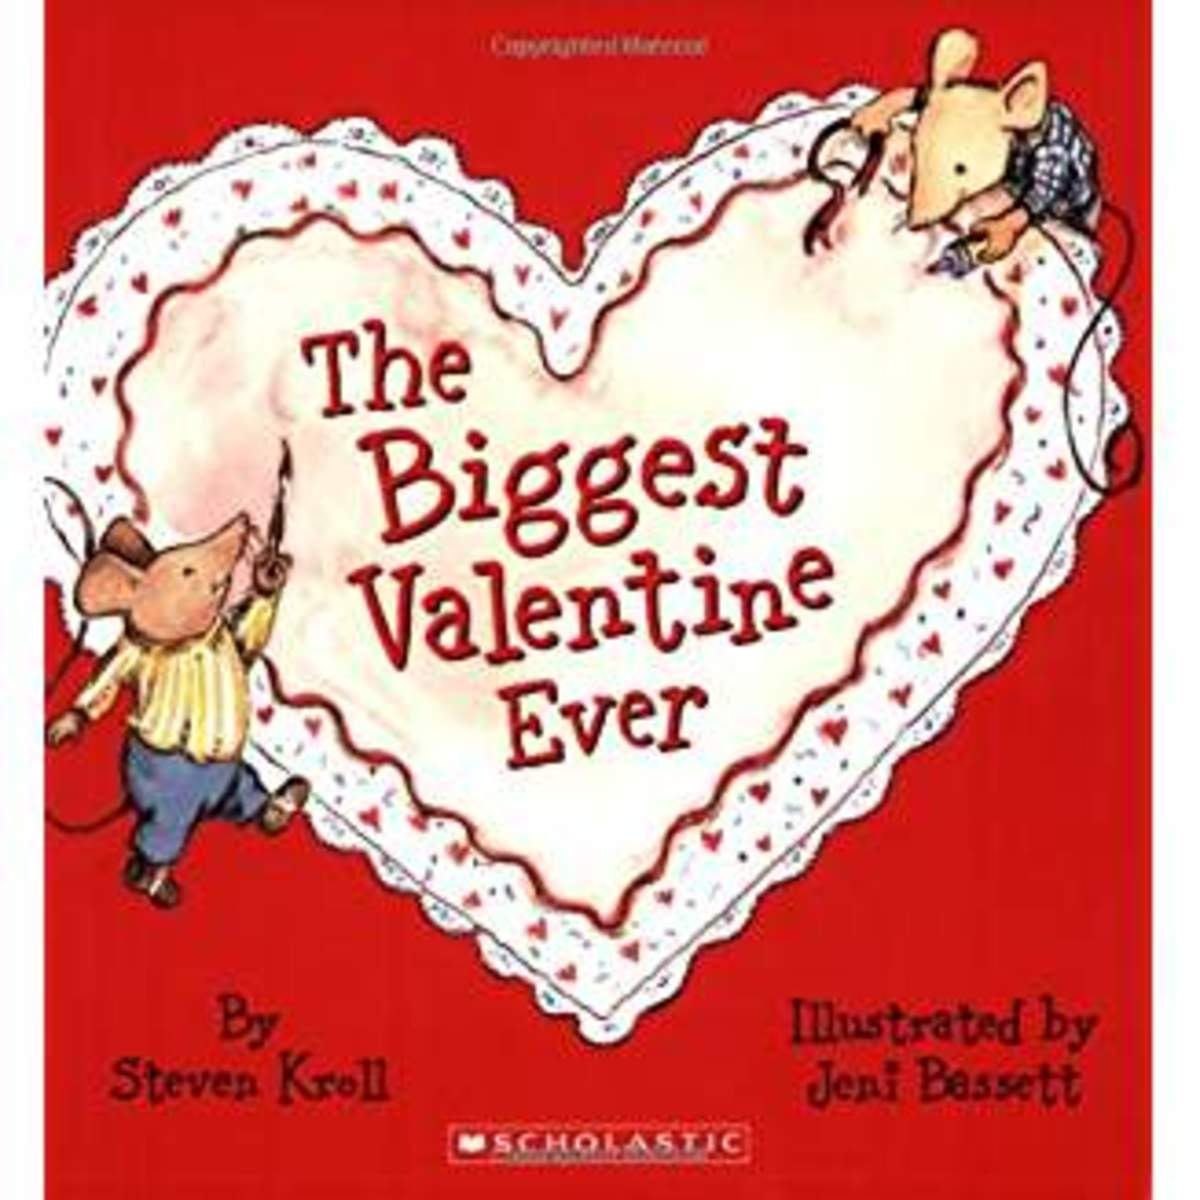 The Biggest Valentine Ever by Steven Kroll